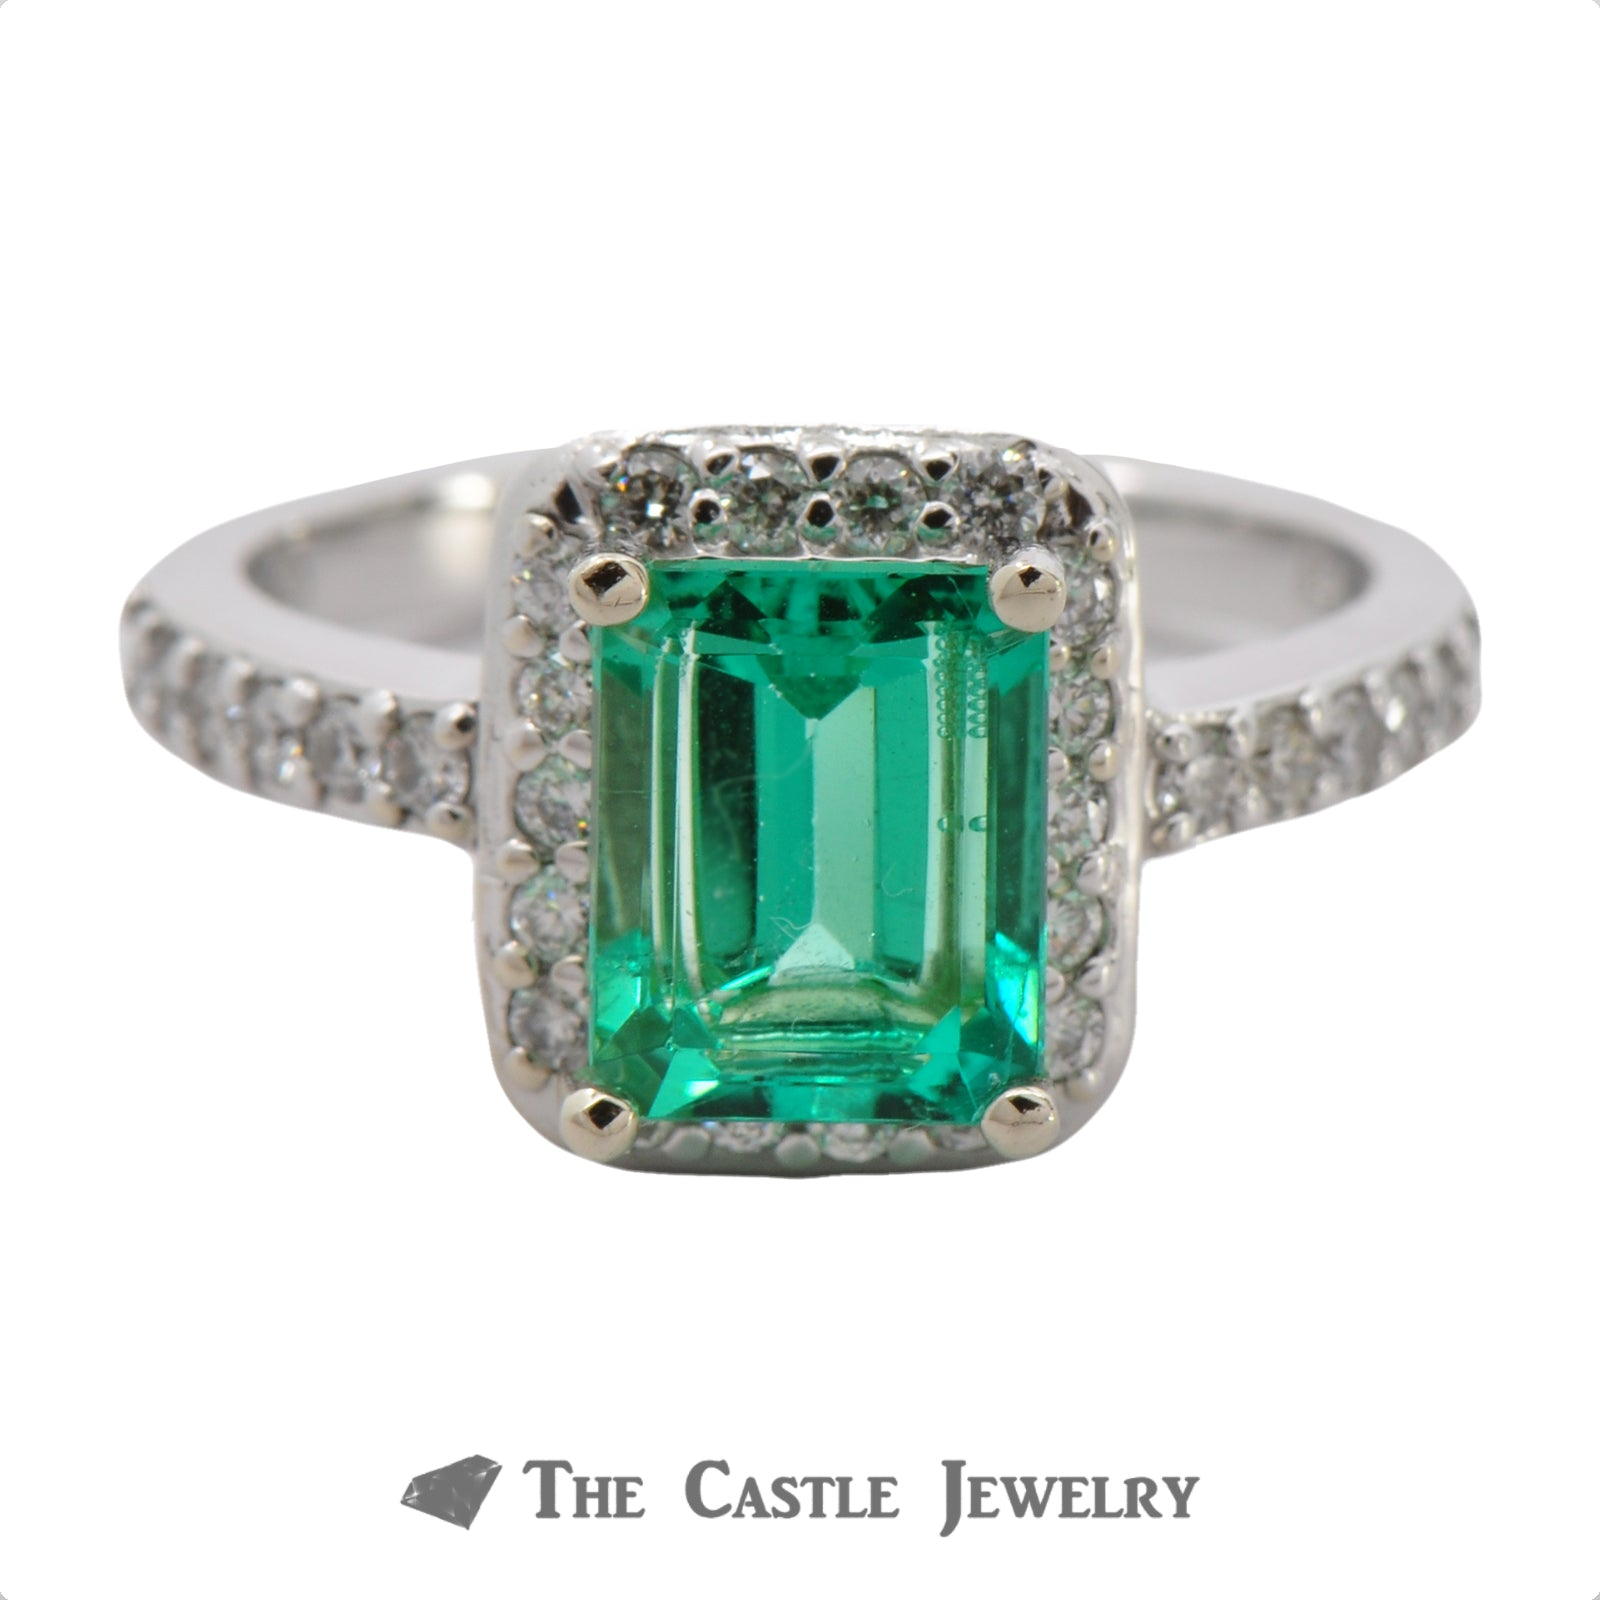 Stunning Emerald Cut Emerald with a Diamond Halo in 14K White Gold